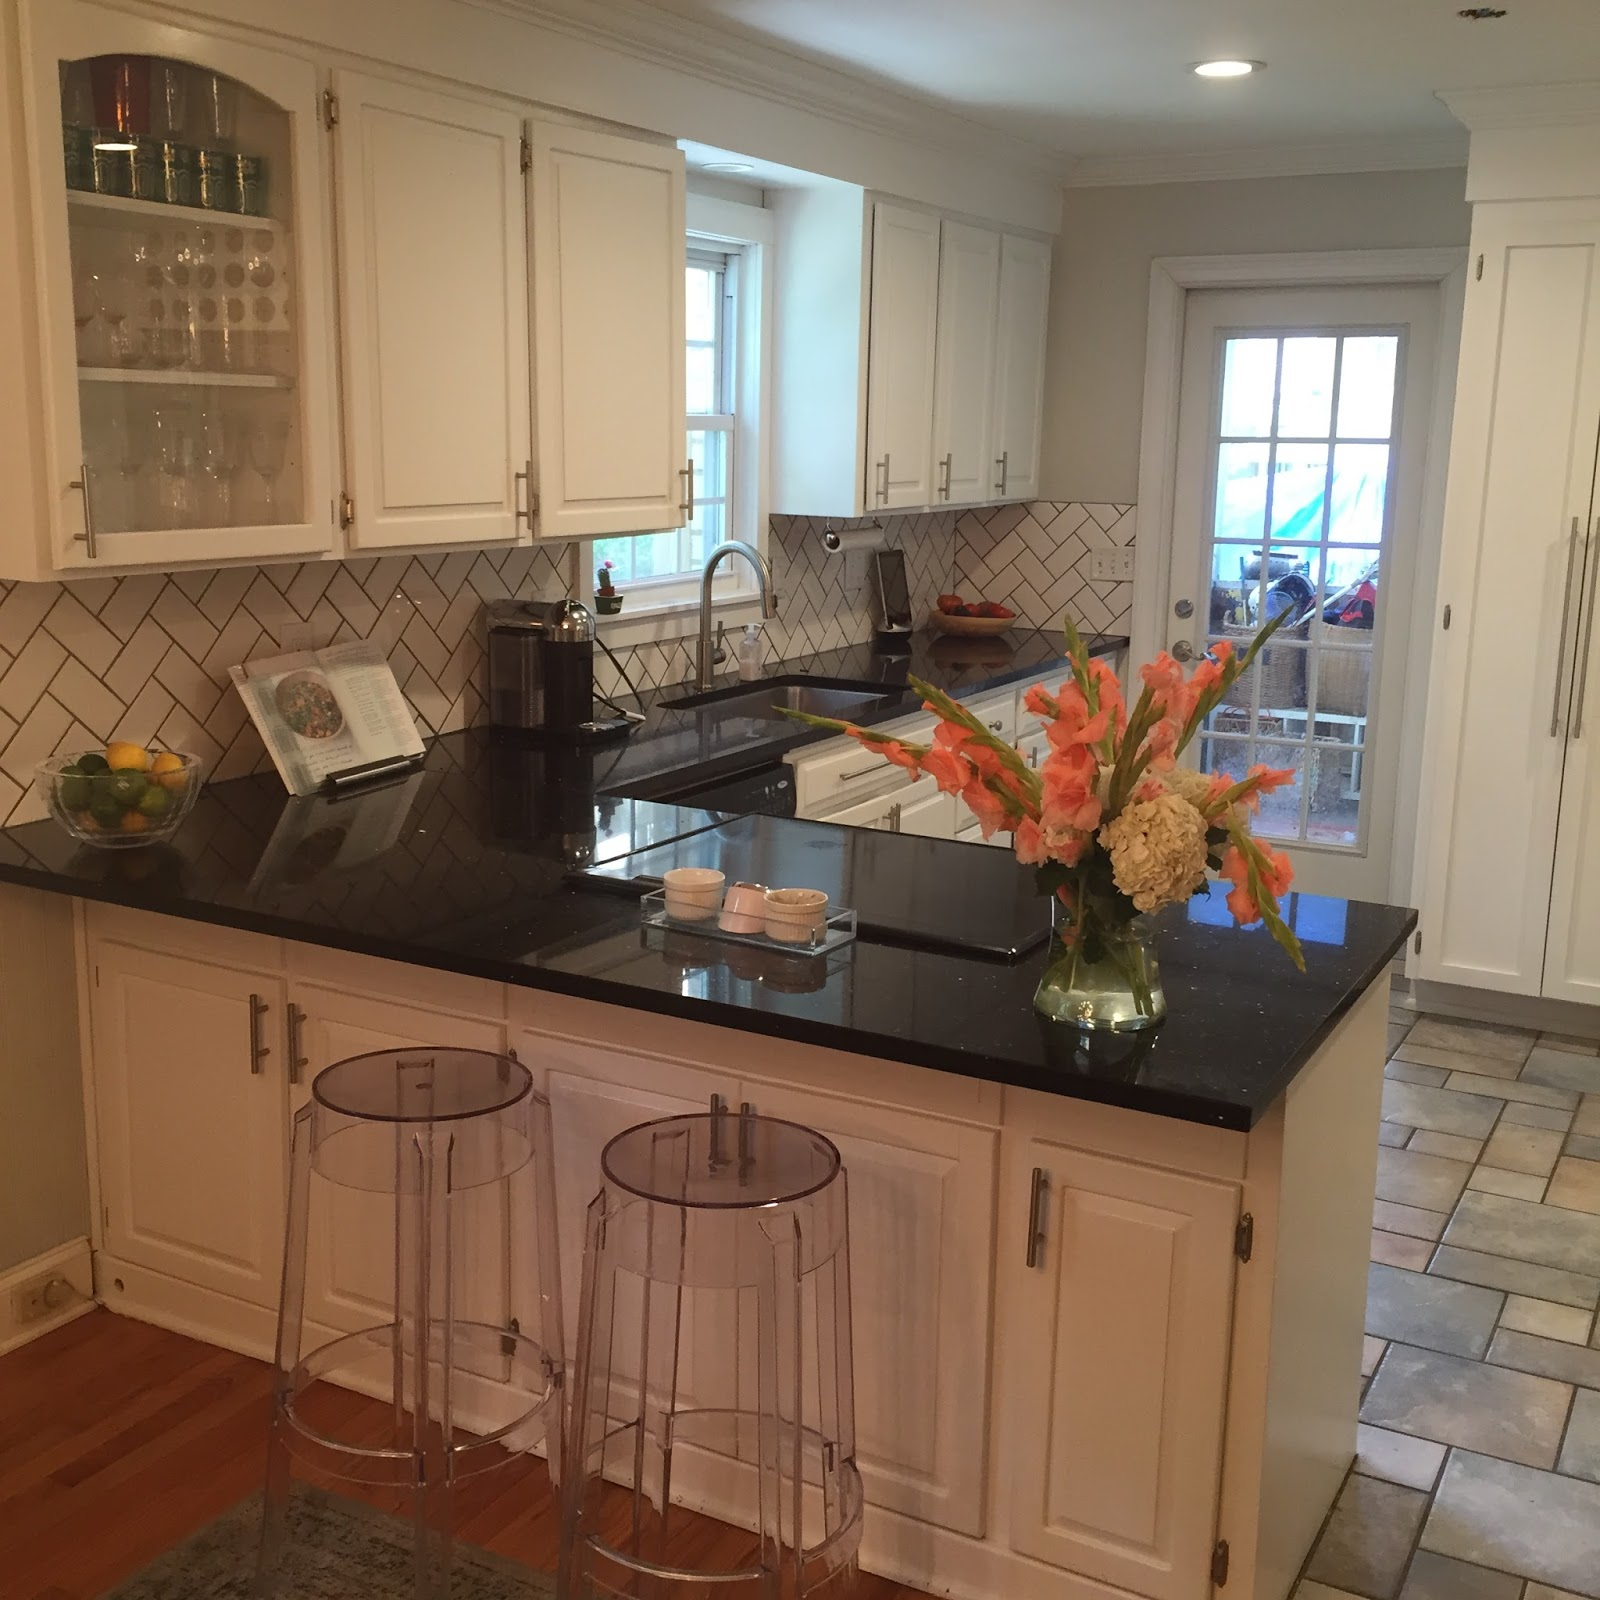 Kitchen Dining Room Remodel: Designer Bags And Dirty Diapers: Kitchen Remodel + Dining